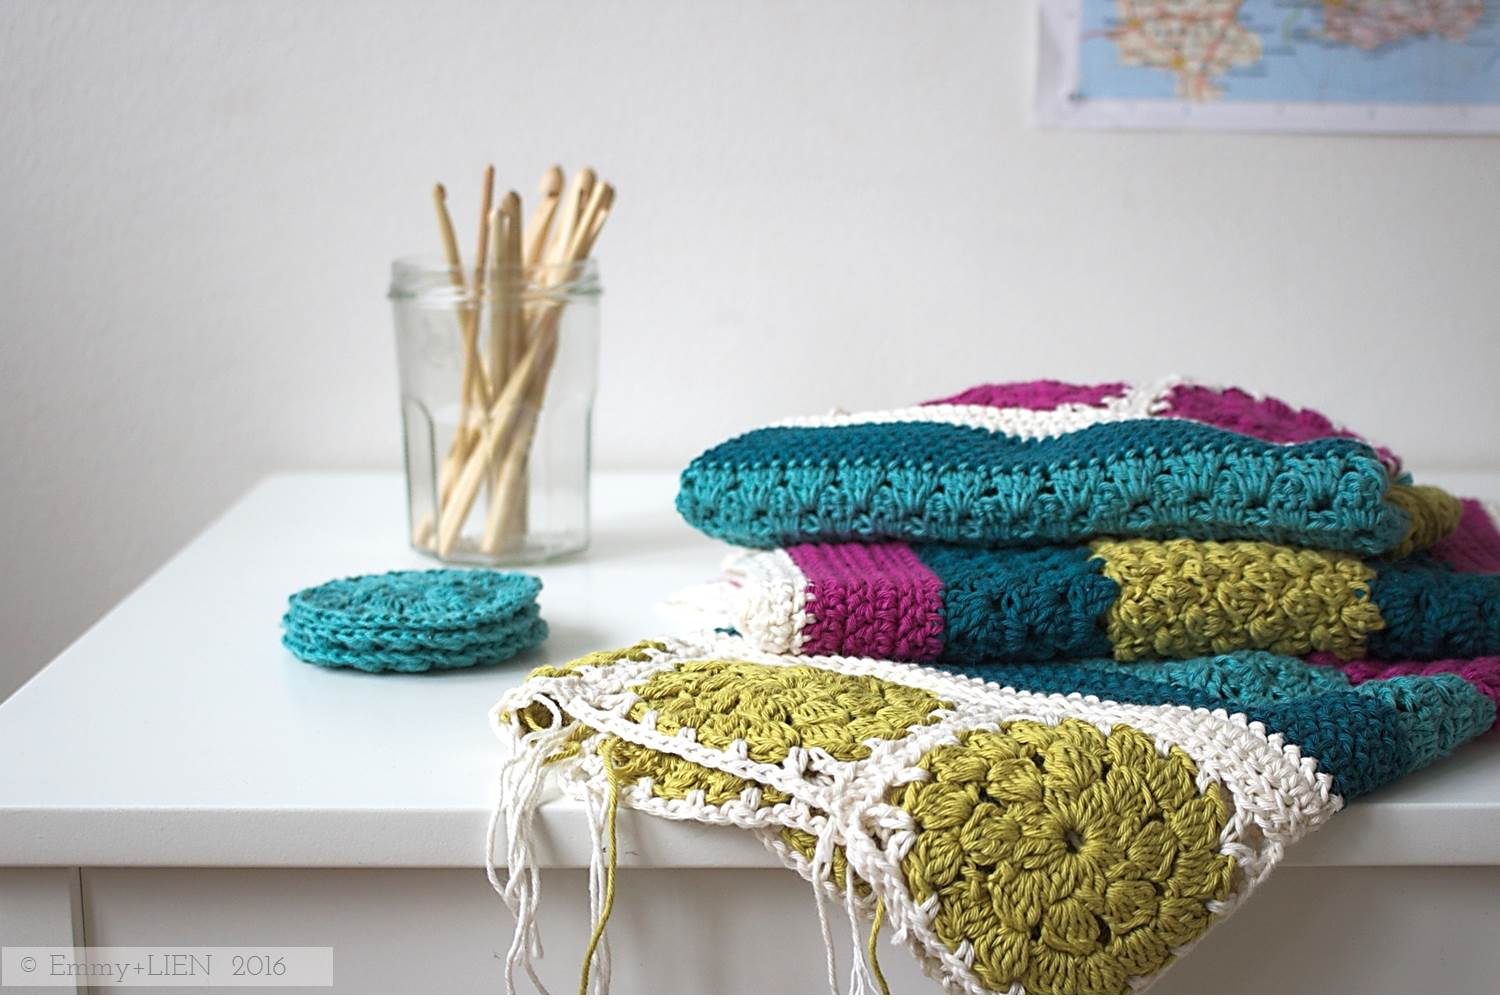 Dally Dahlia blanket in progress | design by Eline Alcocer at Emmy + LIEN